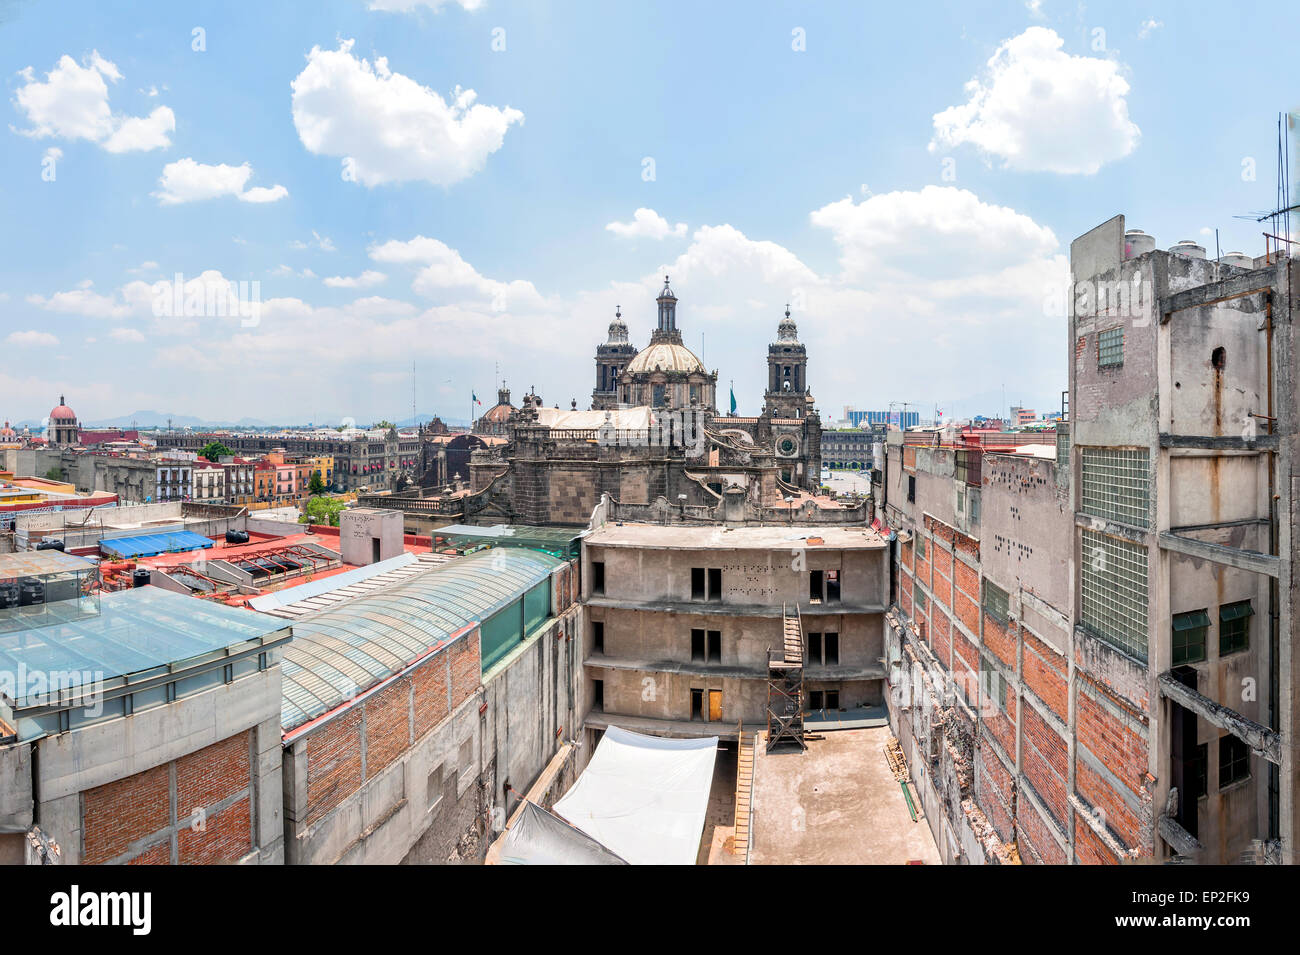 day view of Mexico City zocalo from roofs - Stock Image